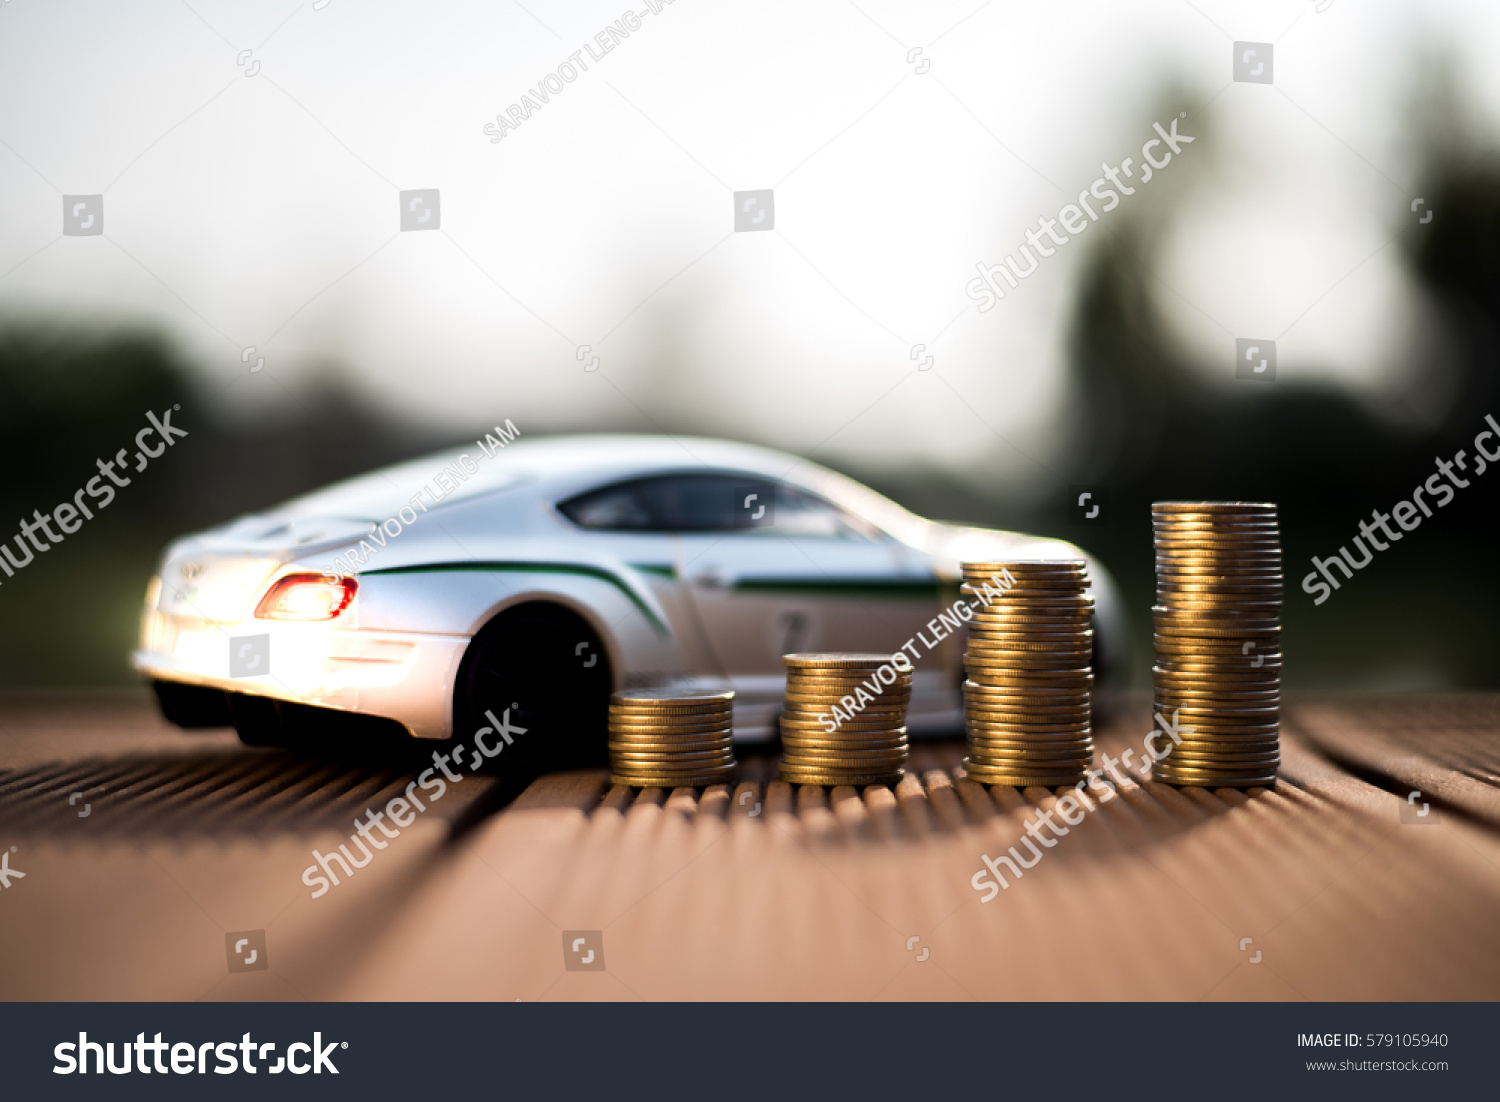 Saving Money Car Trade Car Cash Stock Photo 579105940 - Shutterstock